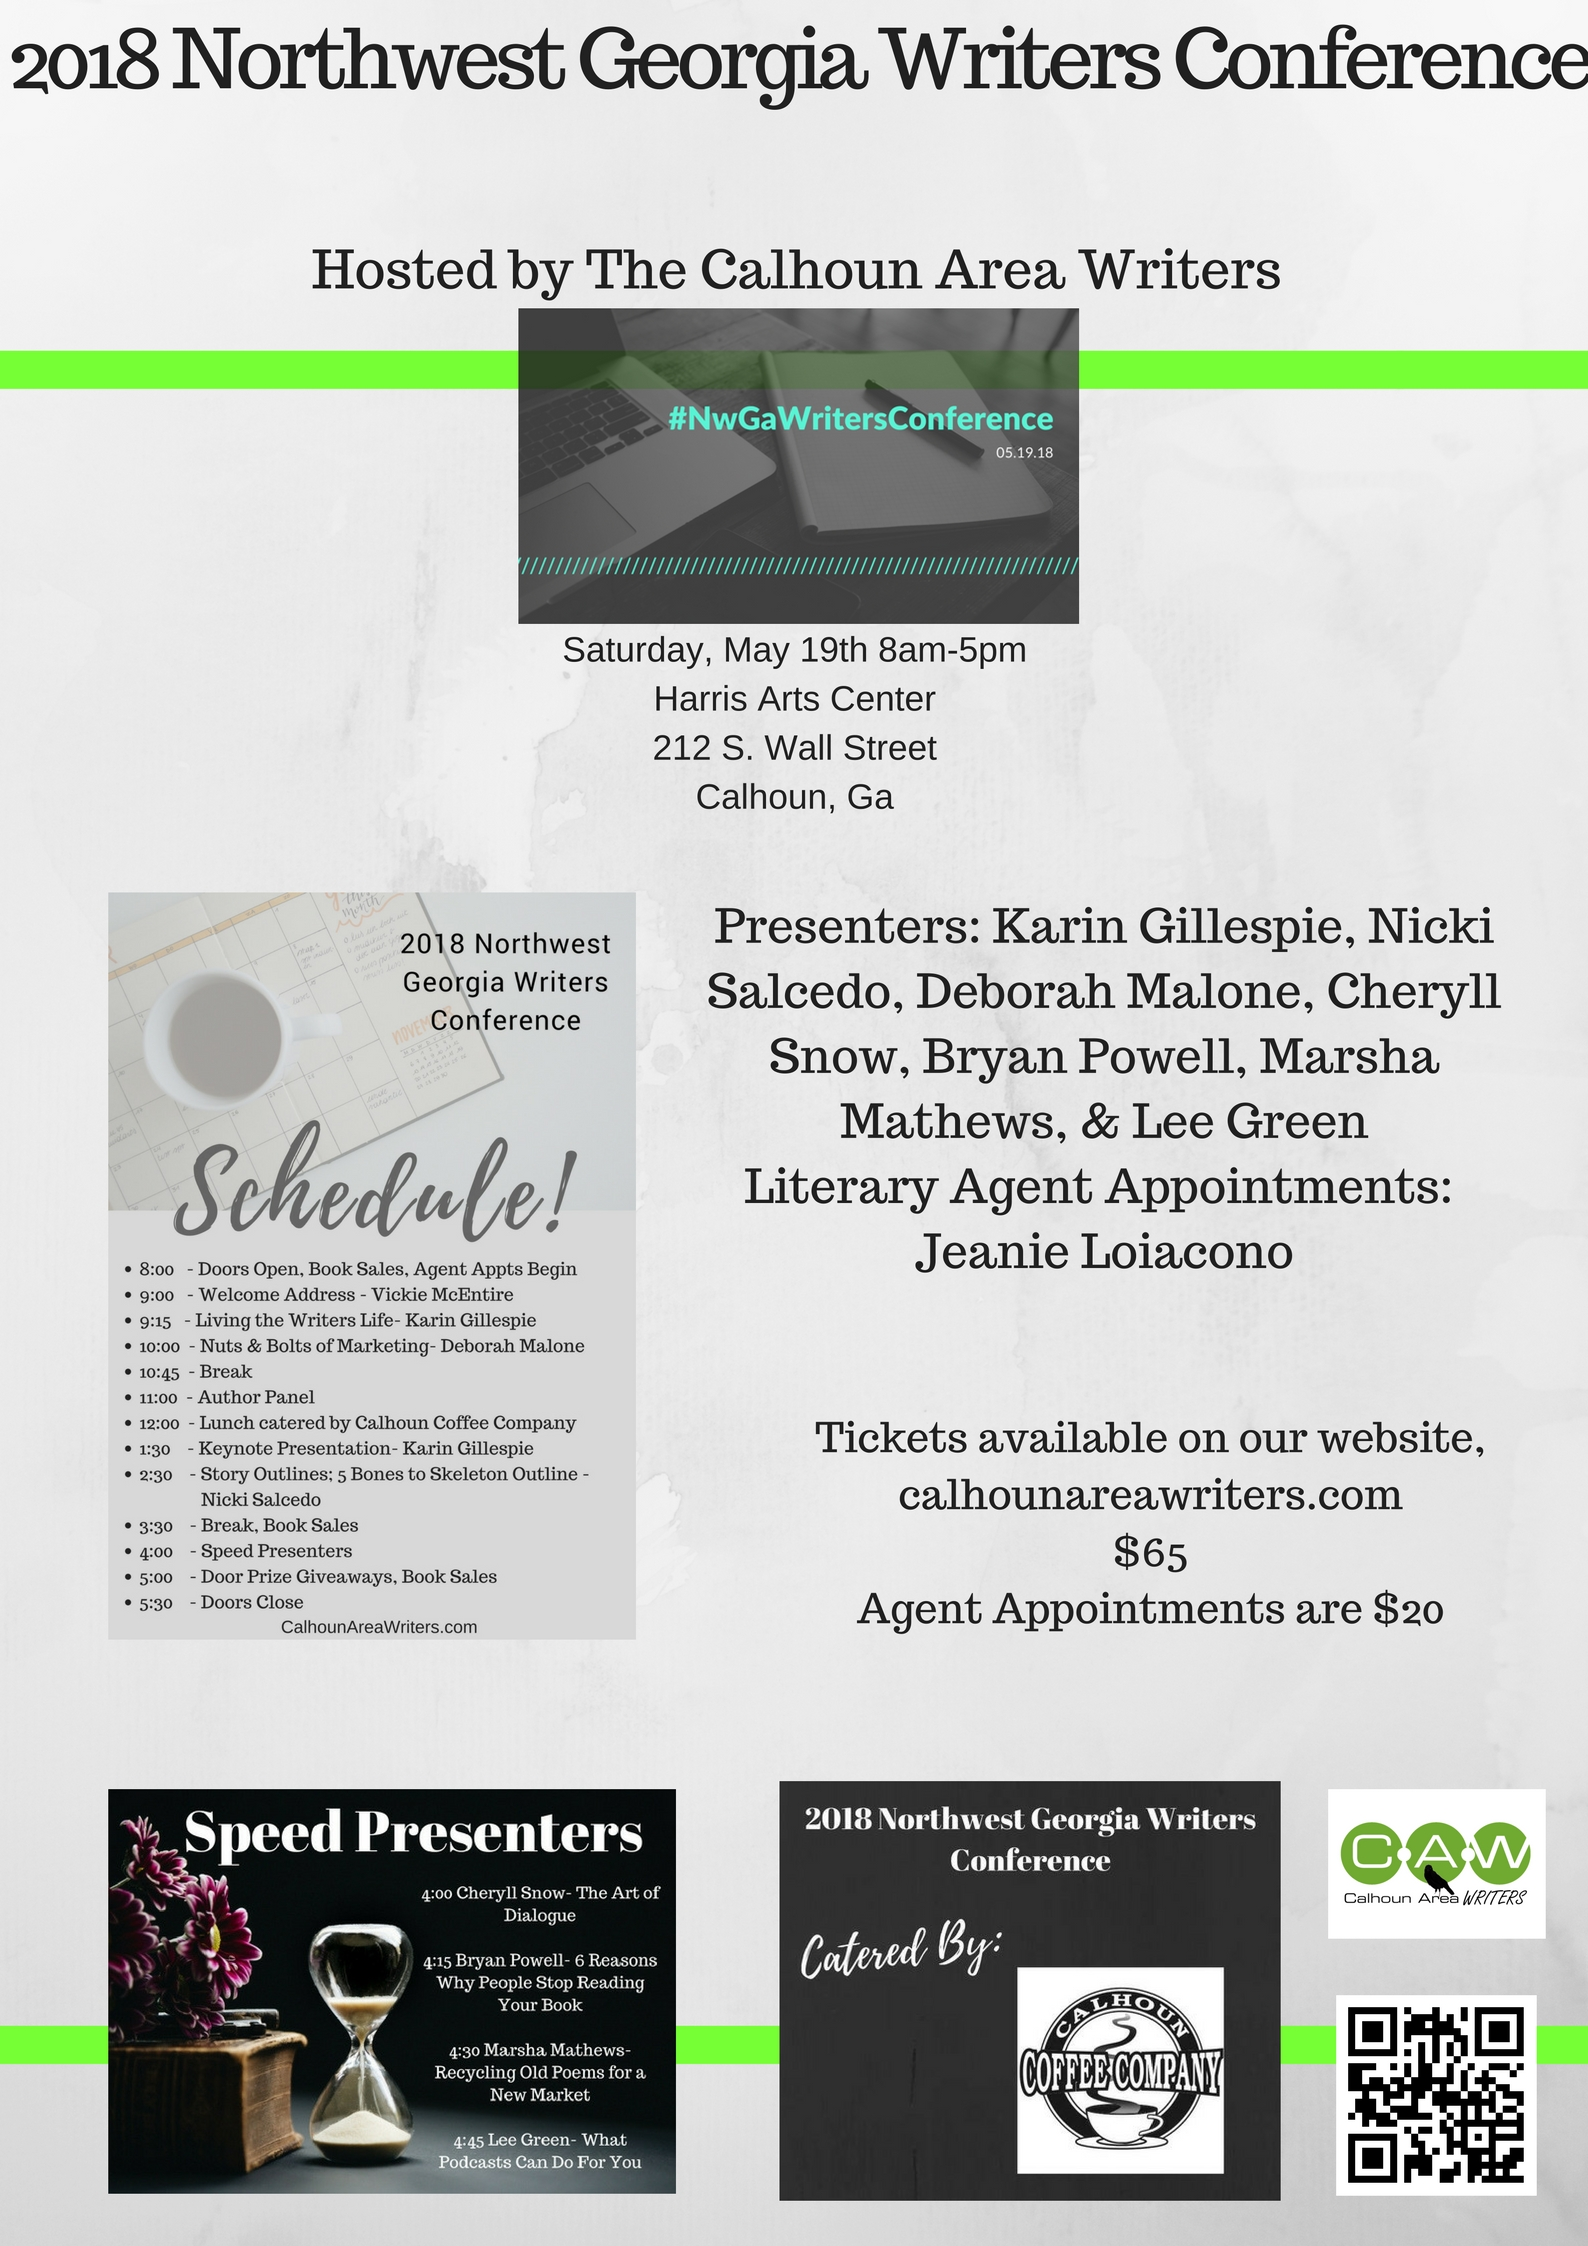 2018 Northwest Georgia Writers Conference – Hosted by The Calhoun